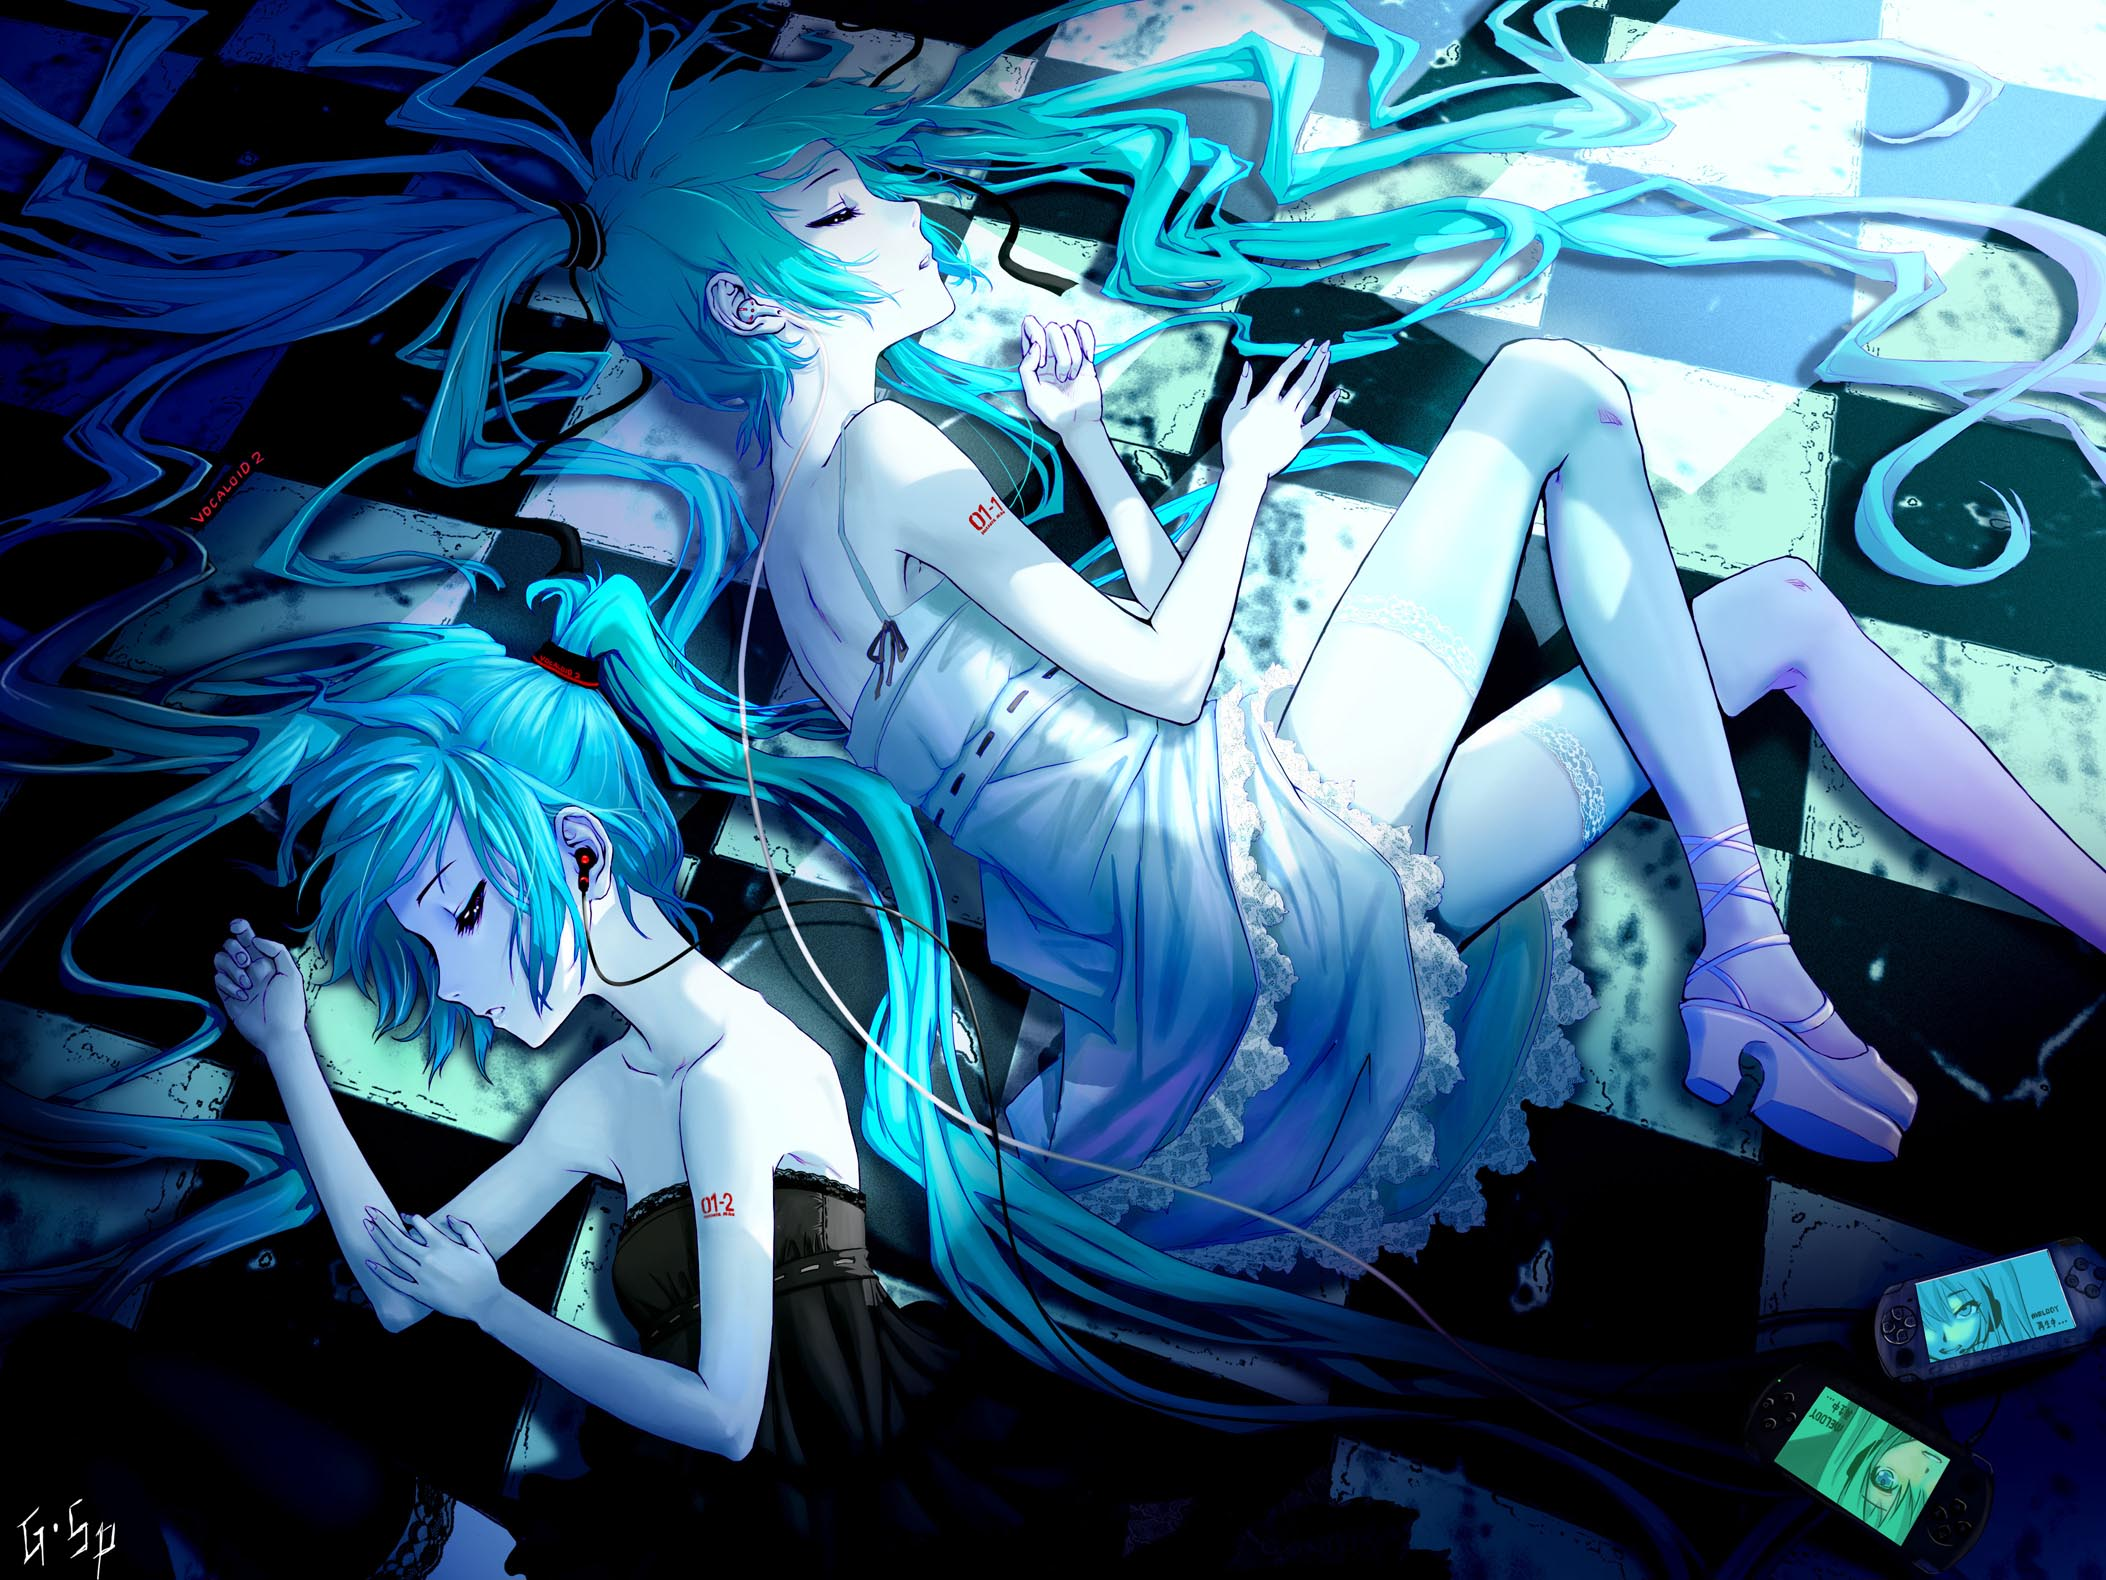 Vocaloid hd wallpaper background image 2106x1580 id - Blue anime wallpaper ...